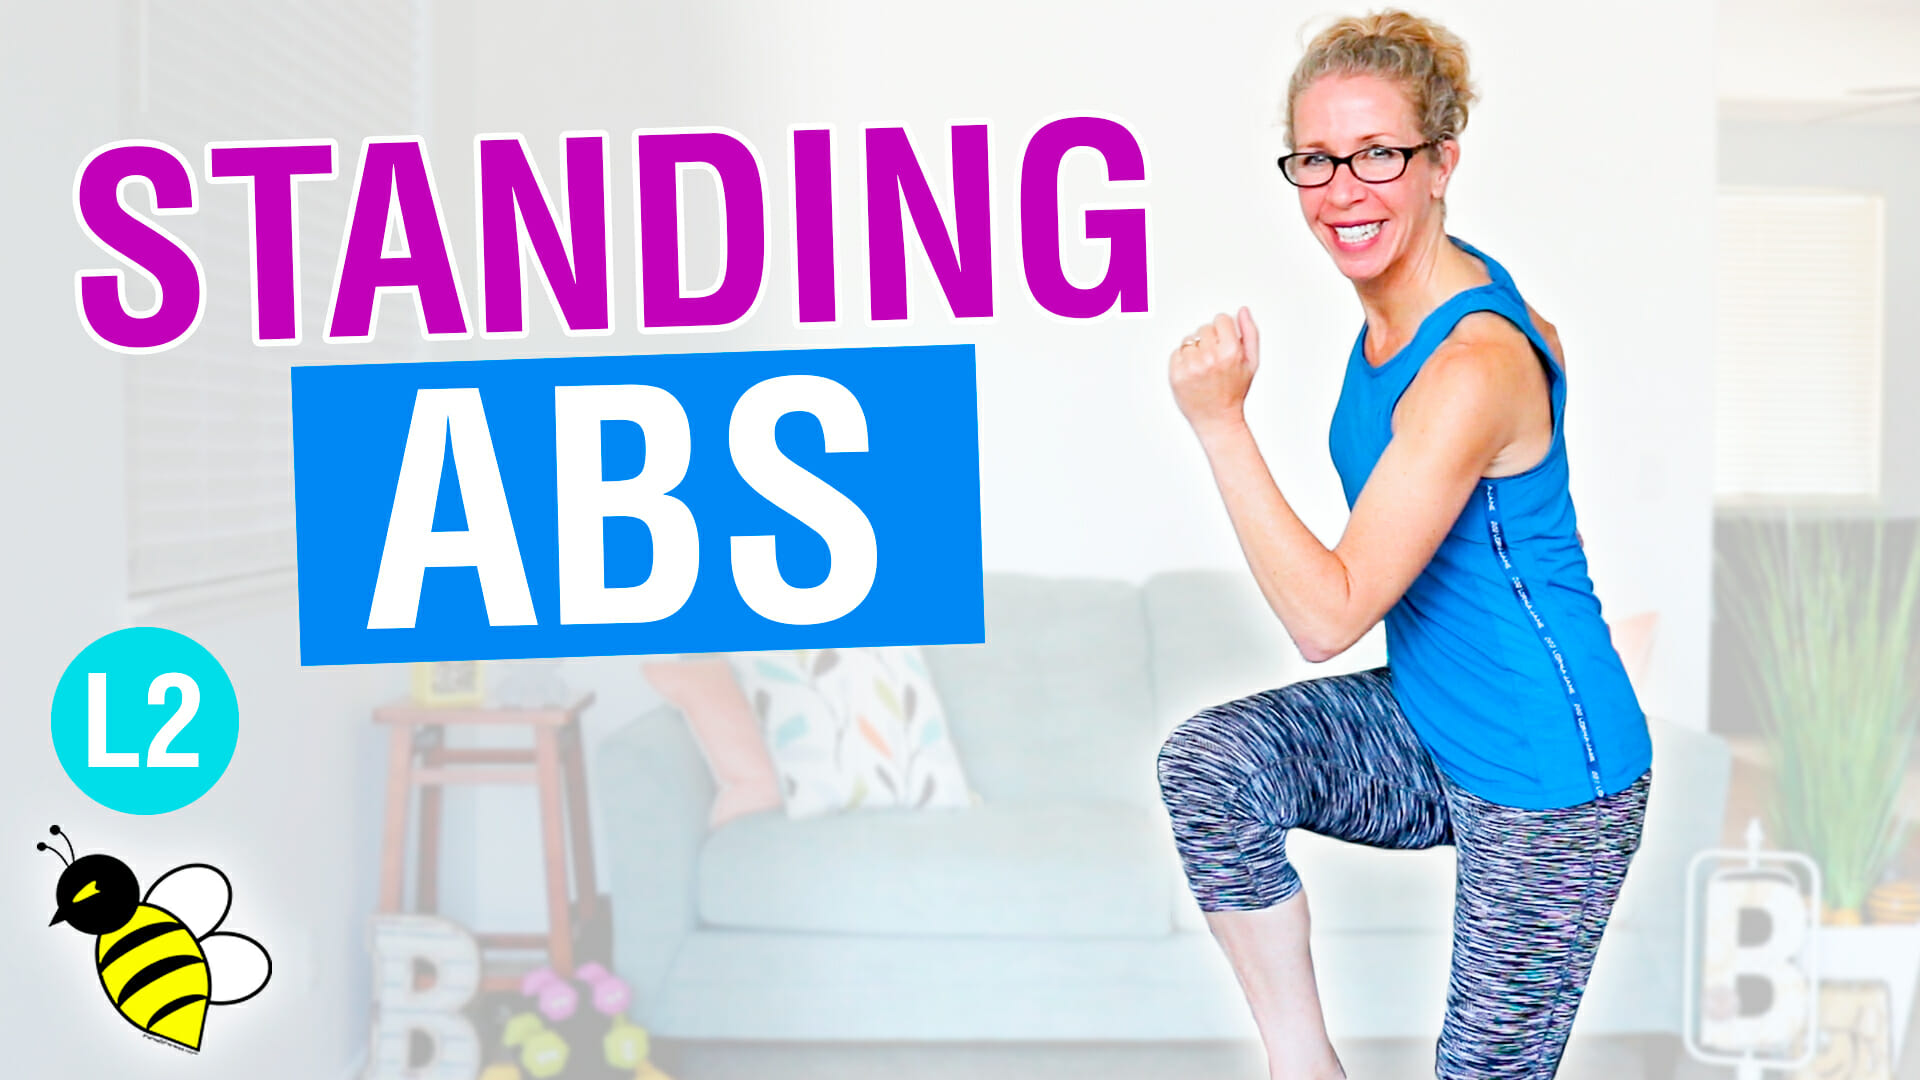 10 minute STANDING ABS stackable workout